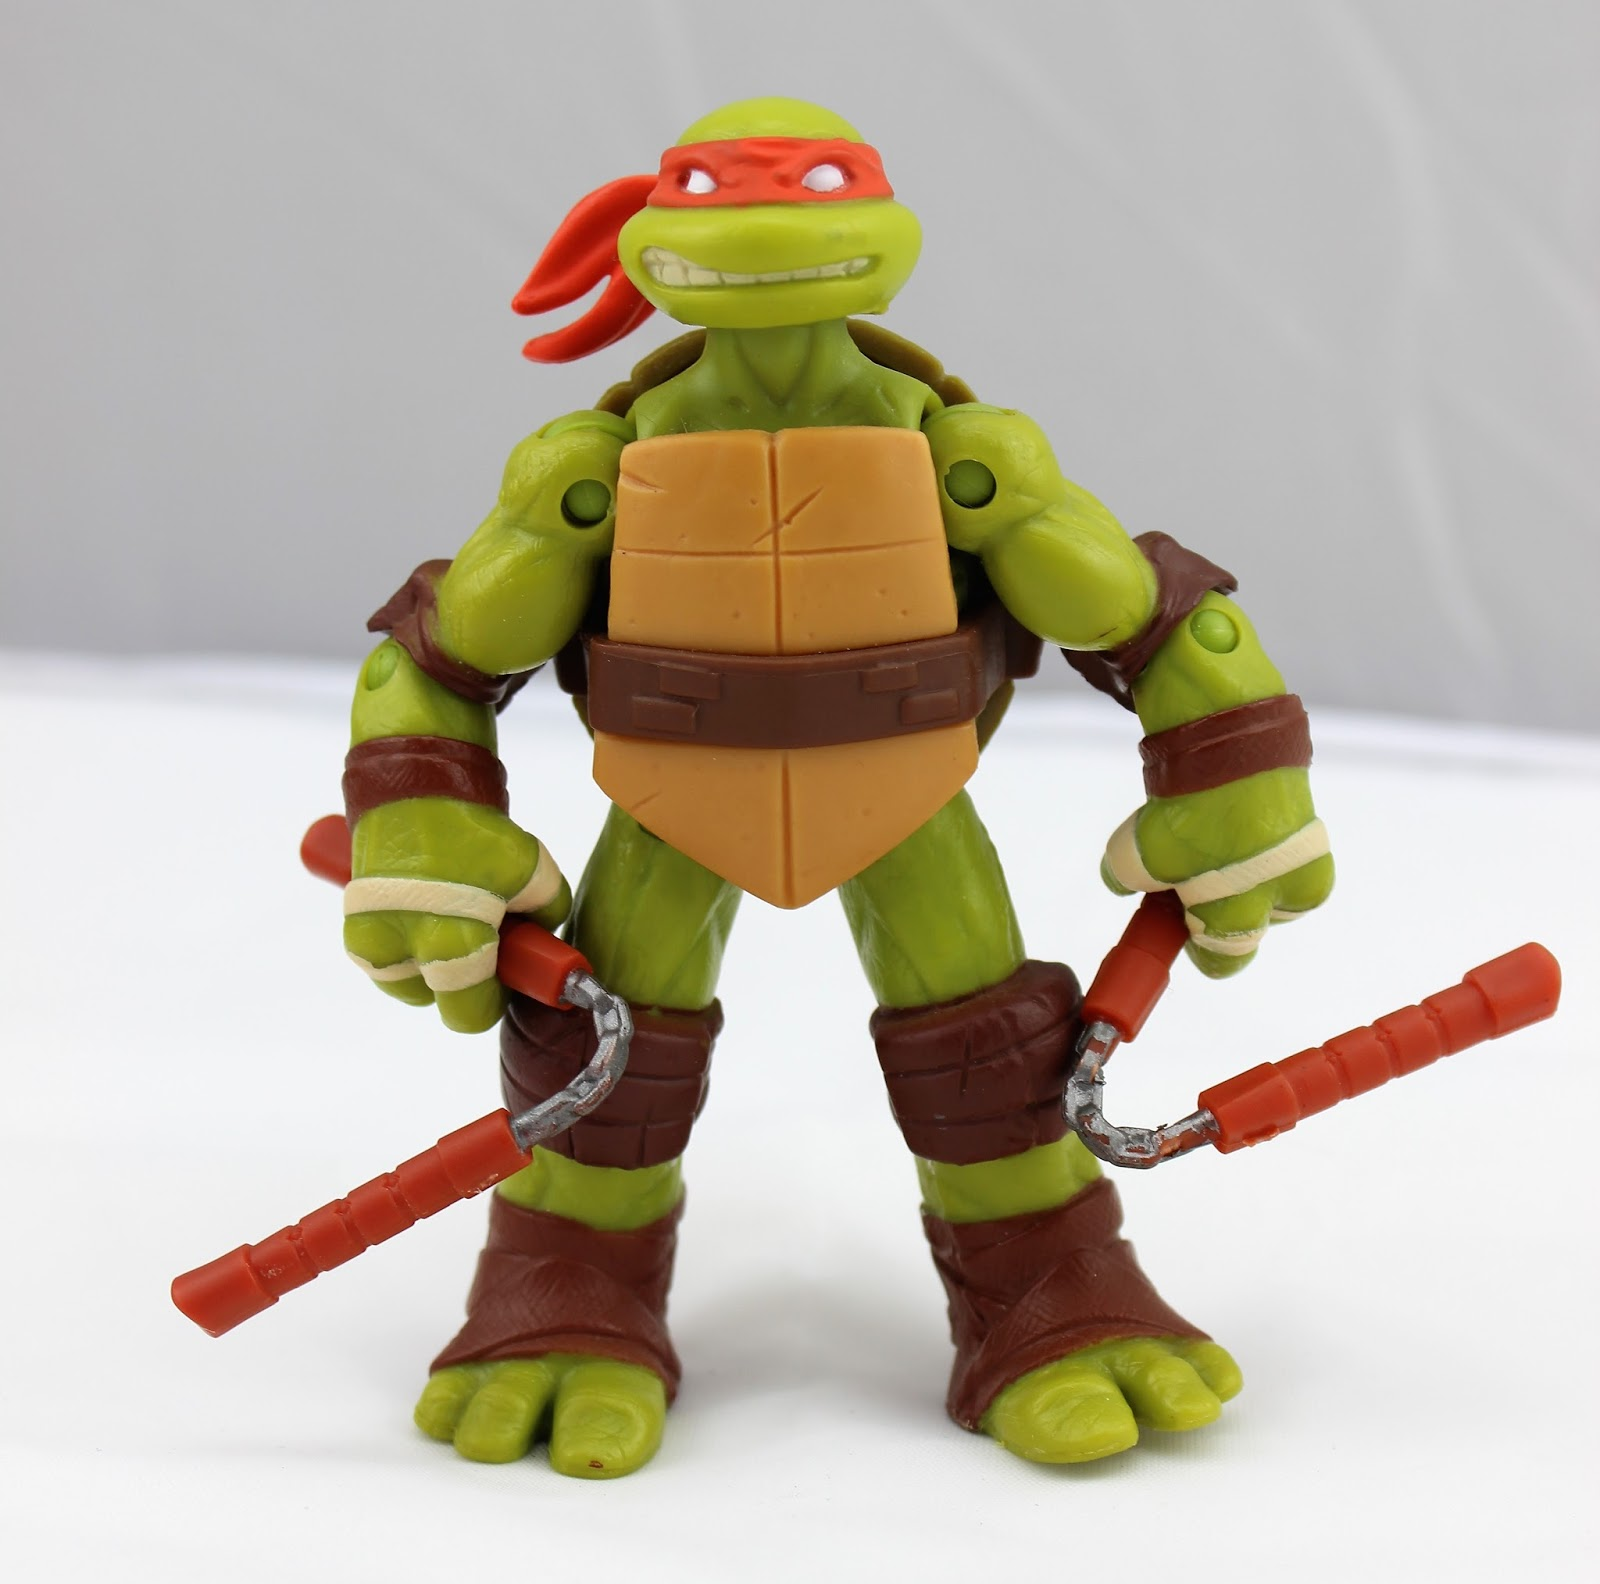 Jay S Toy Shelf Playmates Toys Michelangelo Tmnt 2012 Series